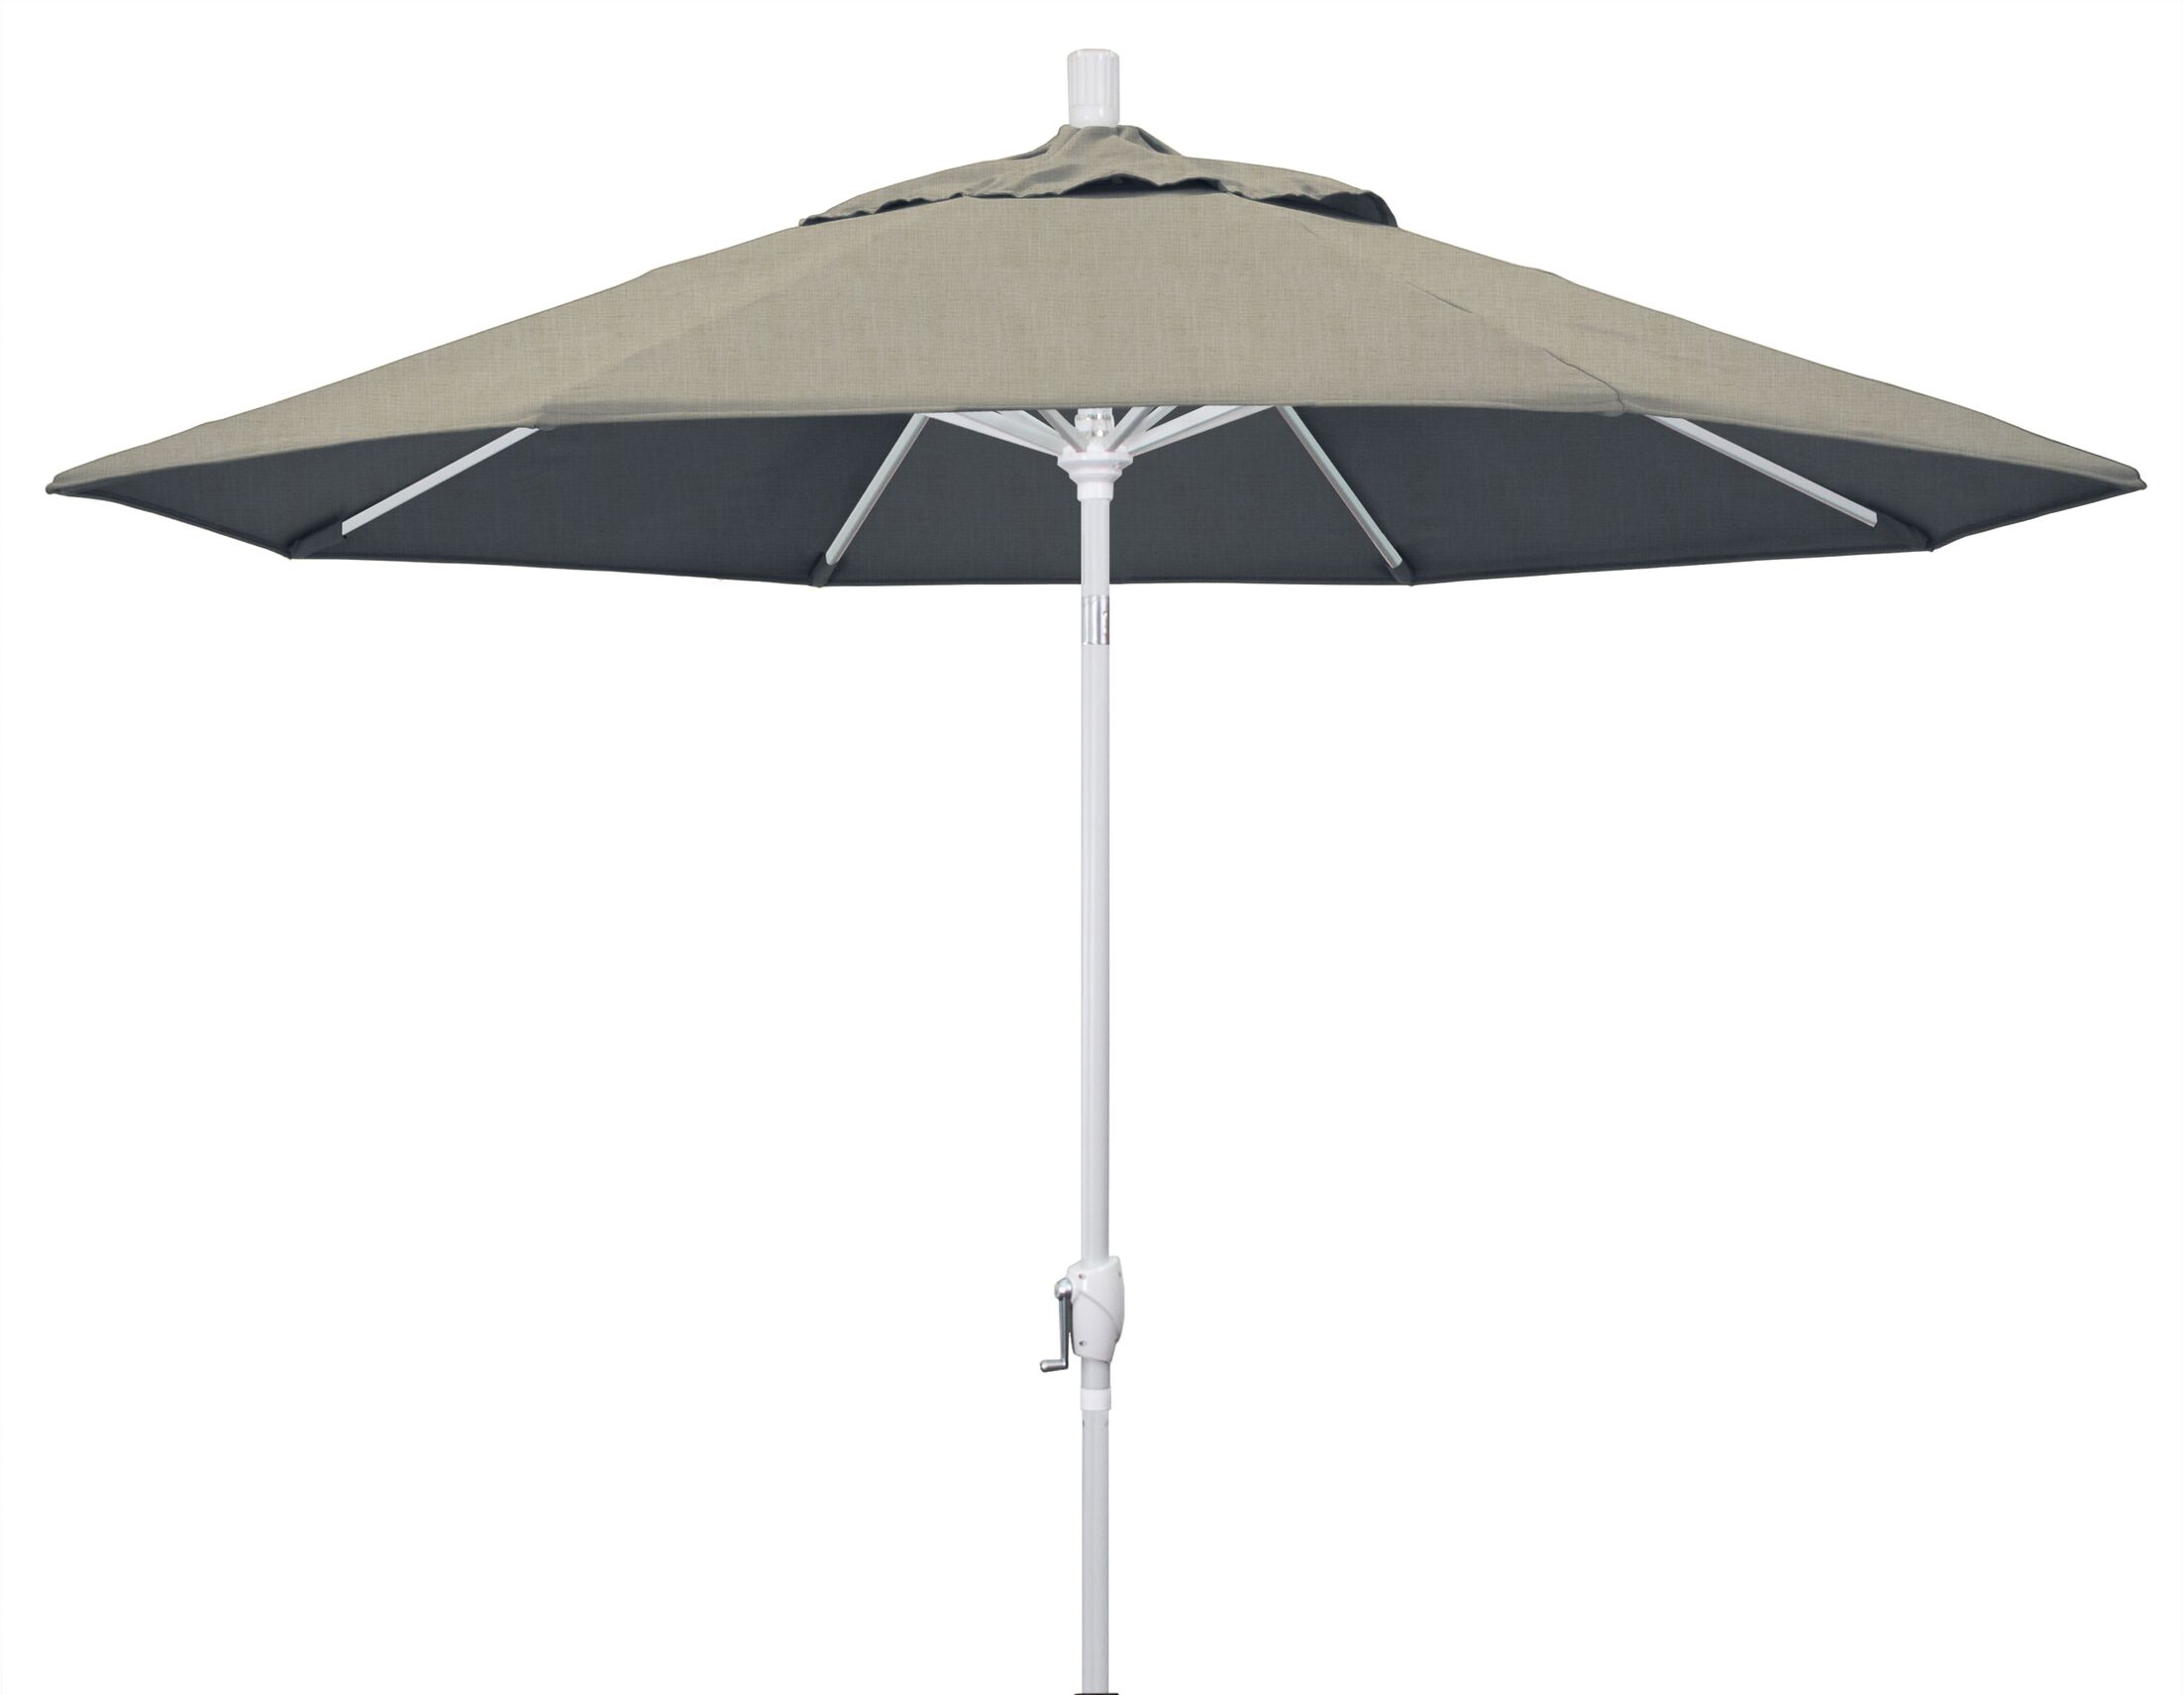 Cello 9' Market Umbrella Frame Finish: Matted White, Fabric: Sunbrella - Spectrum Dove